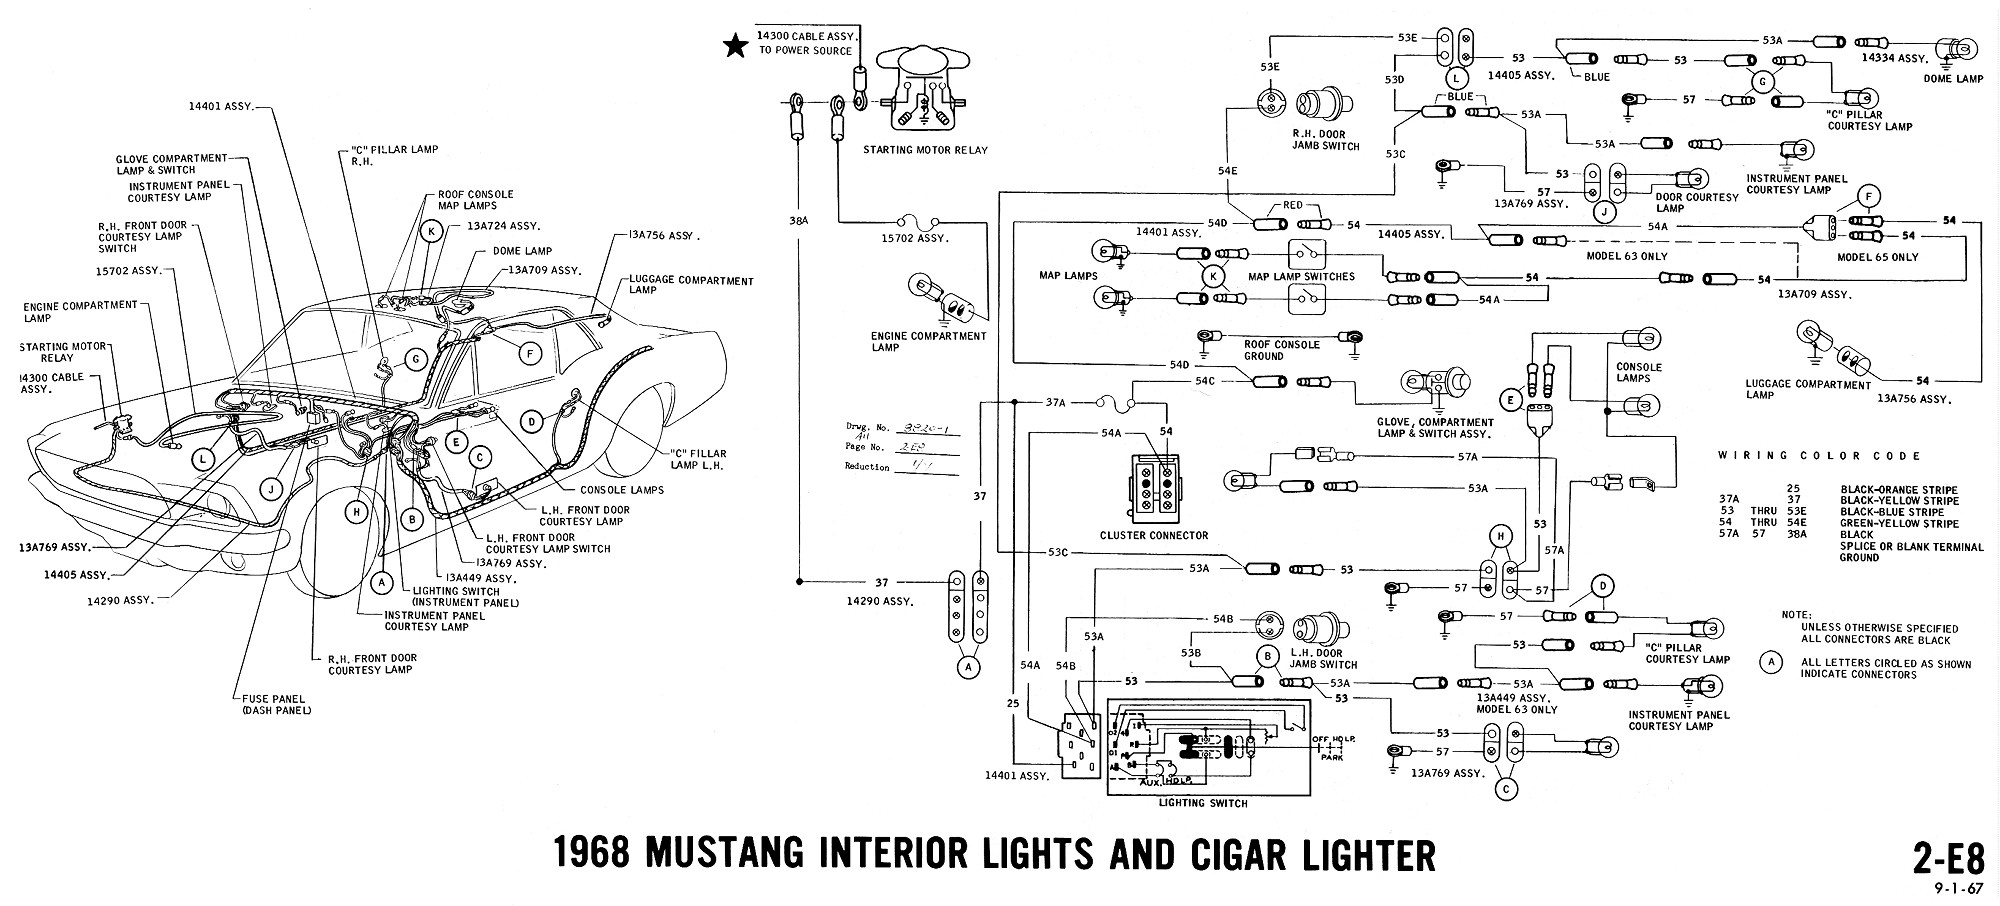 1968 mustang wiring diagram interior lights cigar lighter 1968 mustang wiring diagrams and vacuum schematics average joe 1966 mustang starter solenoid wiring diagram at bayanpartner.co